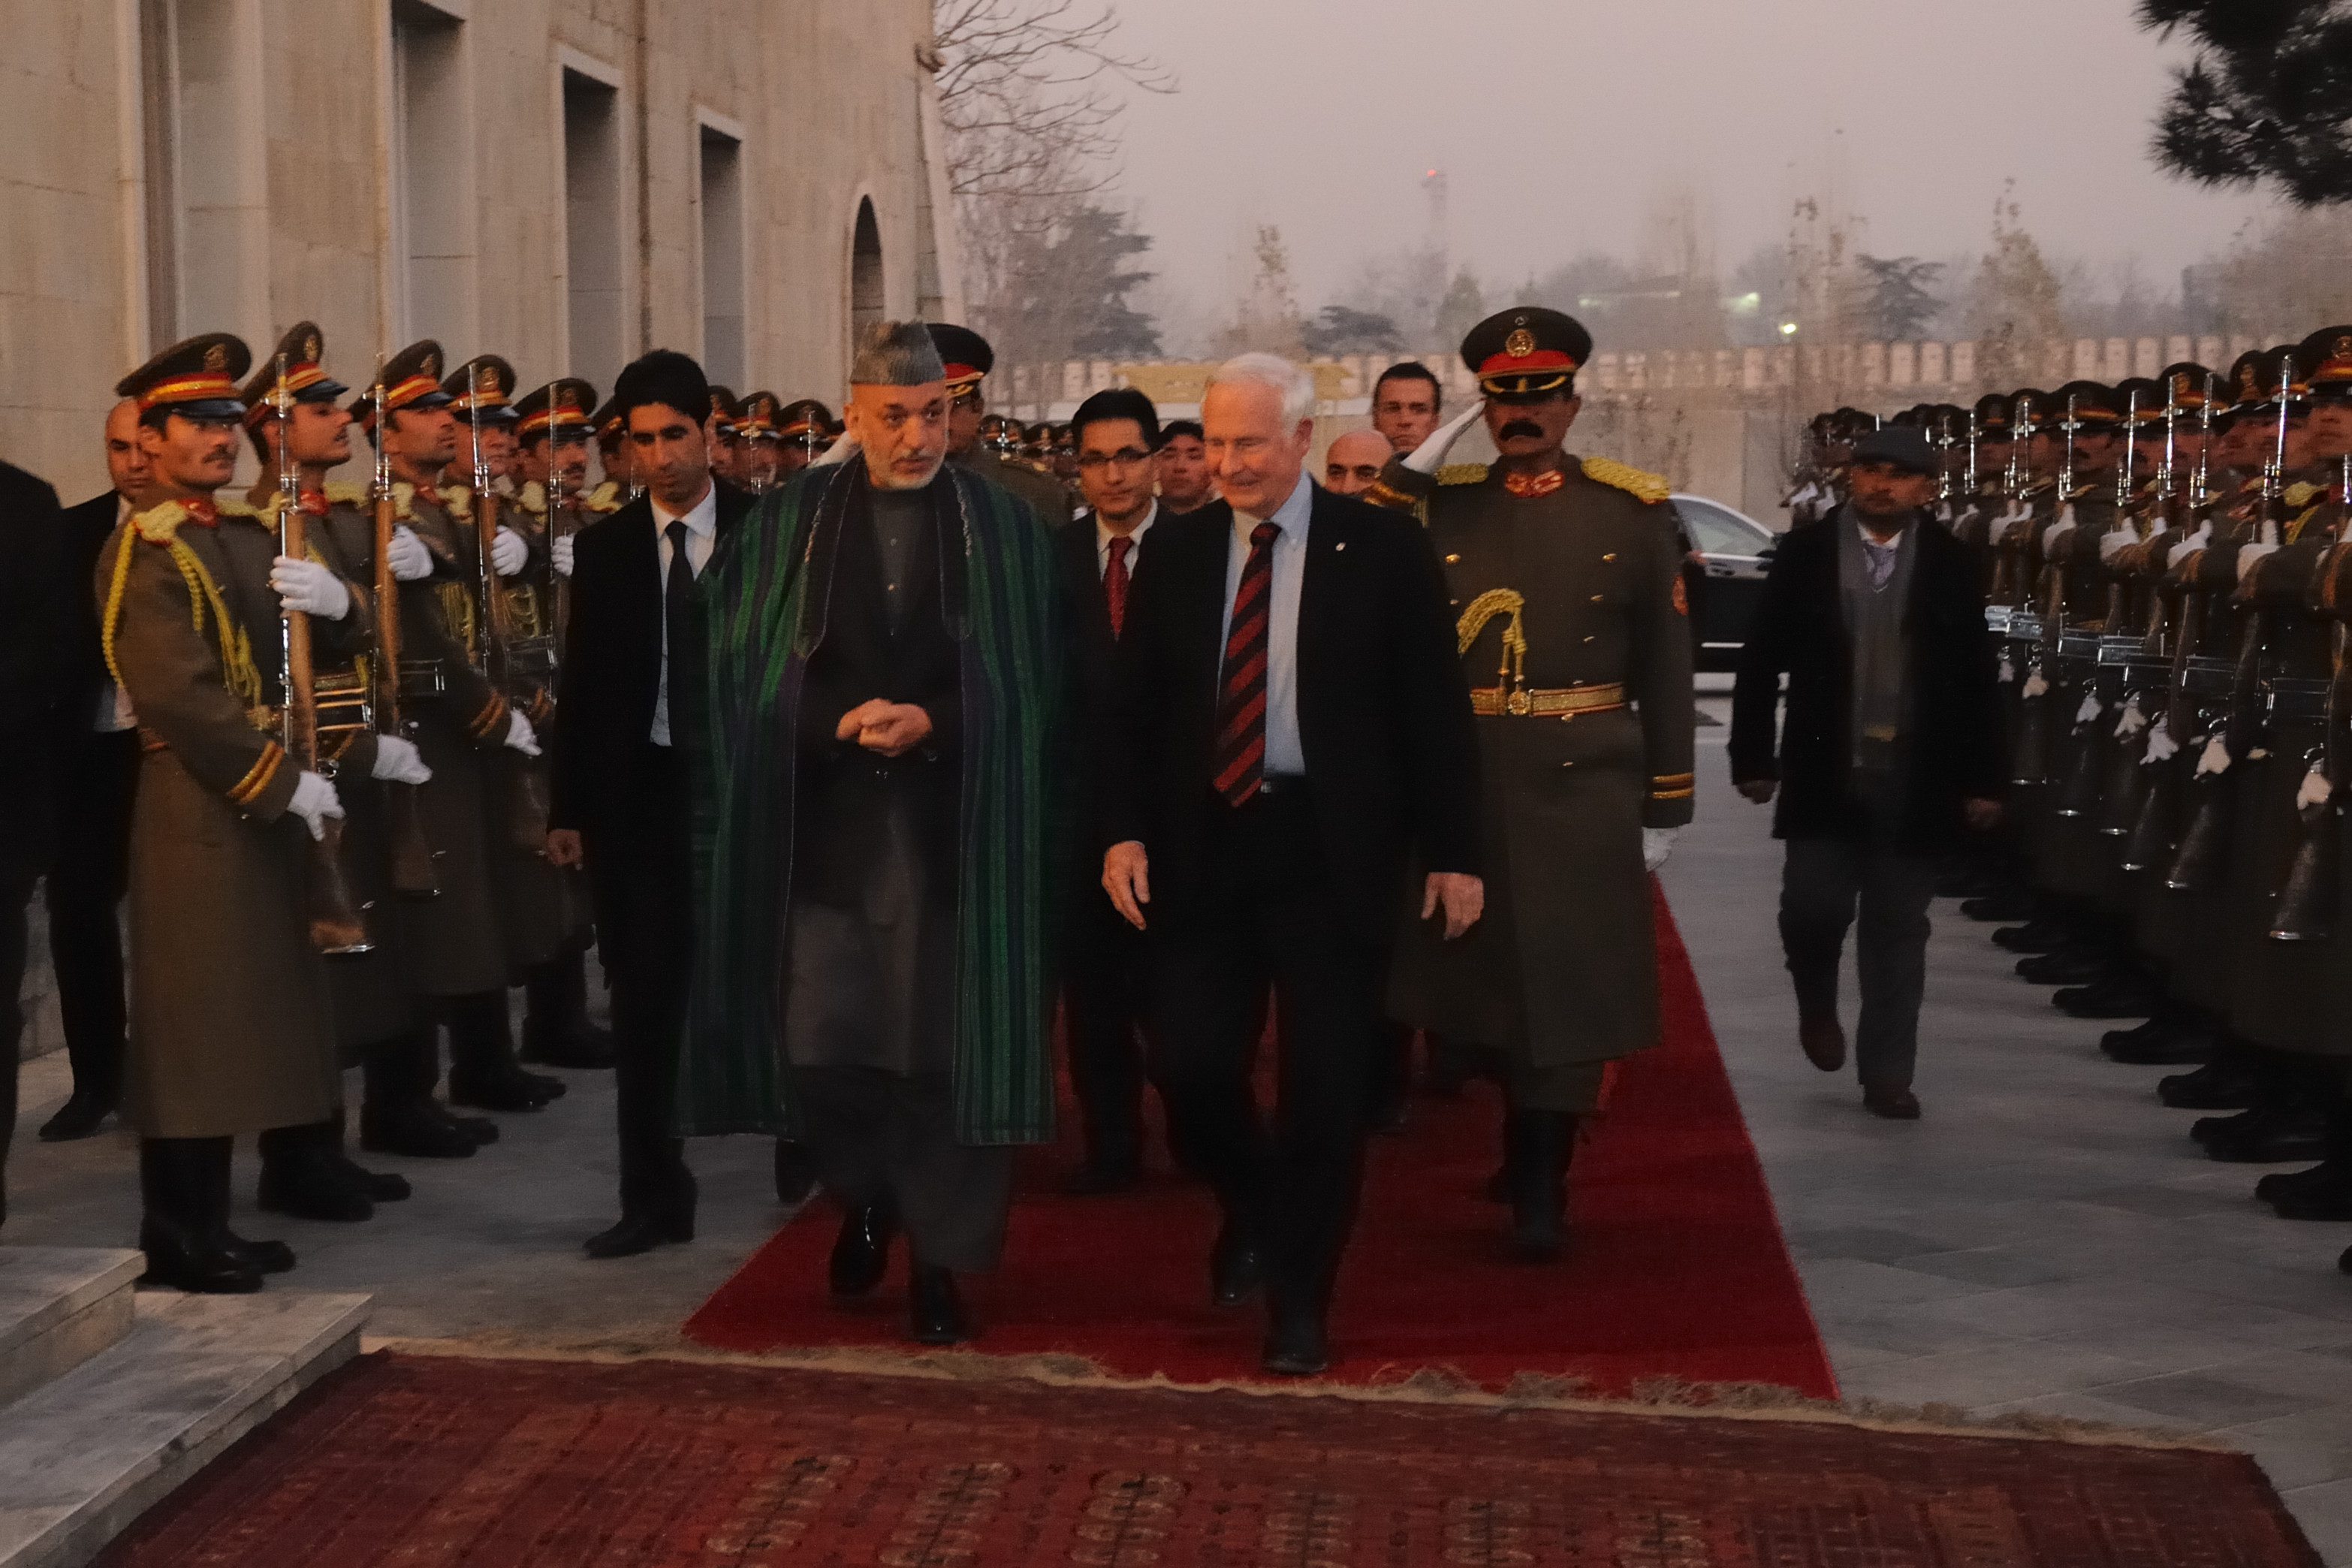 The Governor General was in Kabul on December 24, 2011, to meet with His Excellency Hamid Karzai, President of Afghanistan.